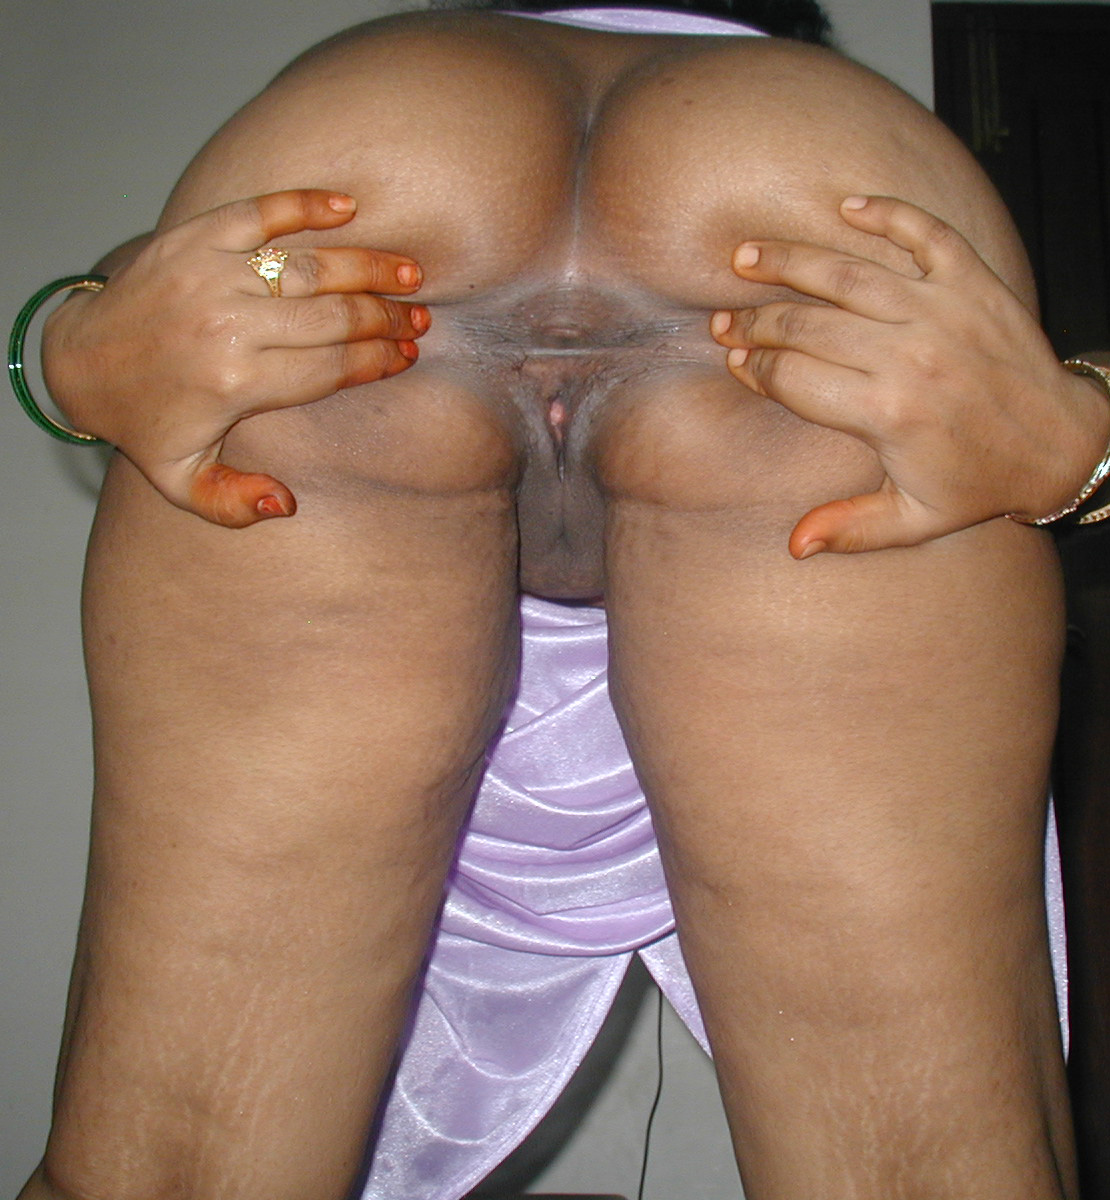 Remarkable, Indian hairy pink wet pussy spread accept